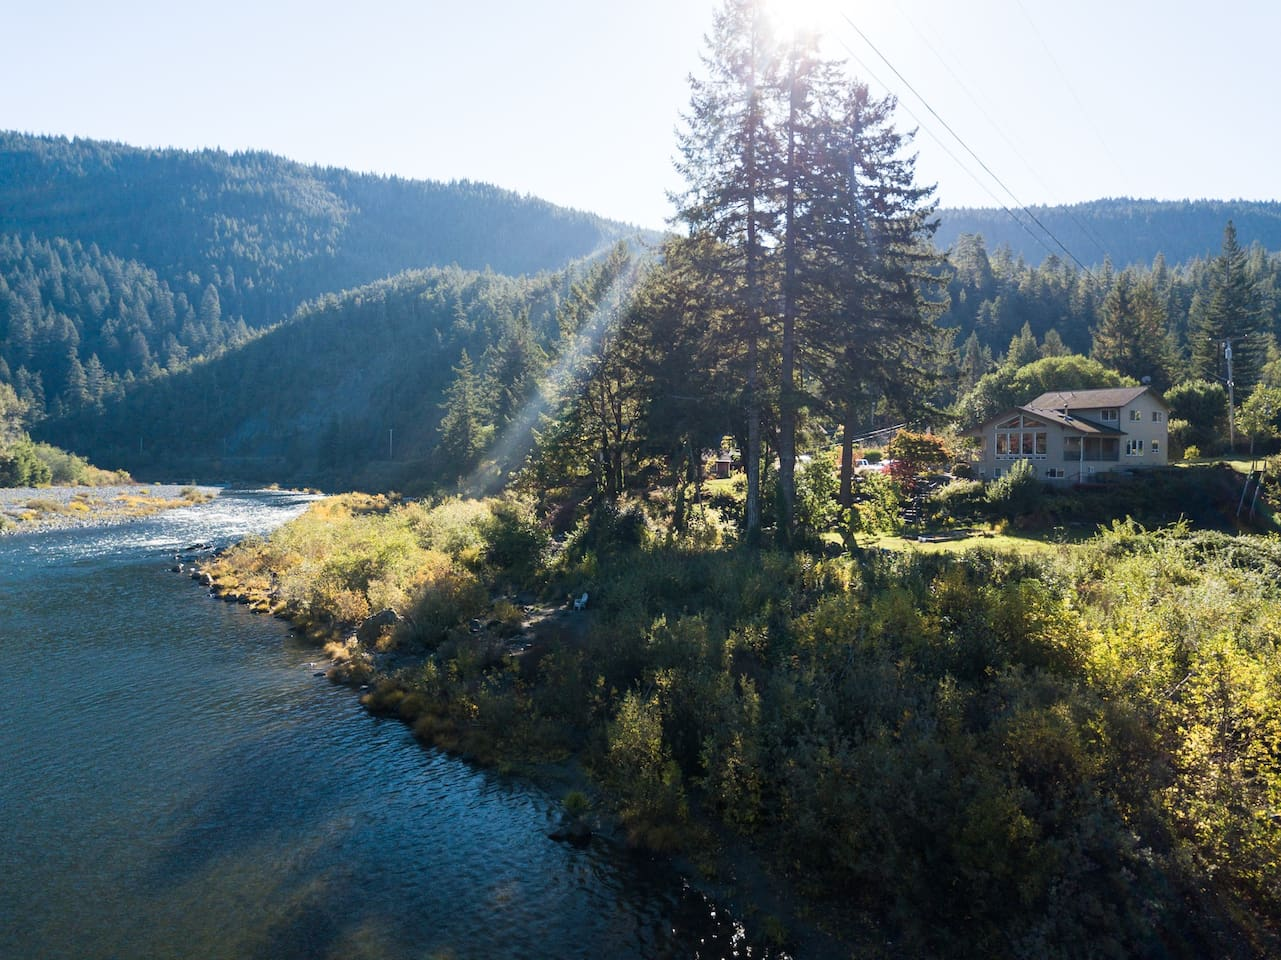 River and Redwoods Retreat Thanks for the great drone photo, Witt and Victoria! Hope to see you again soon.